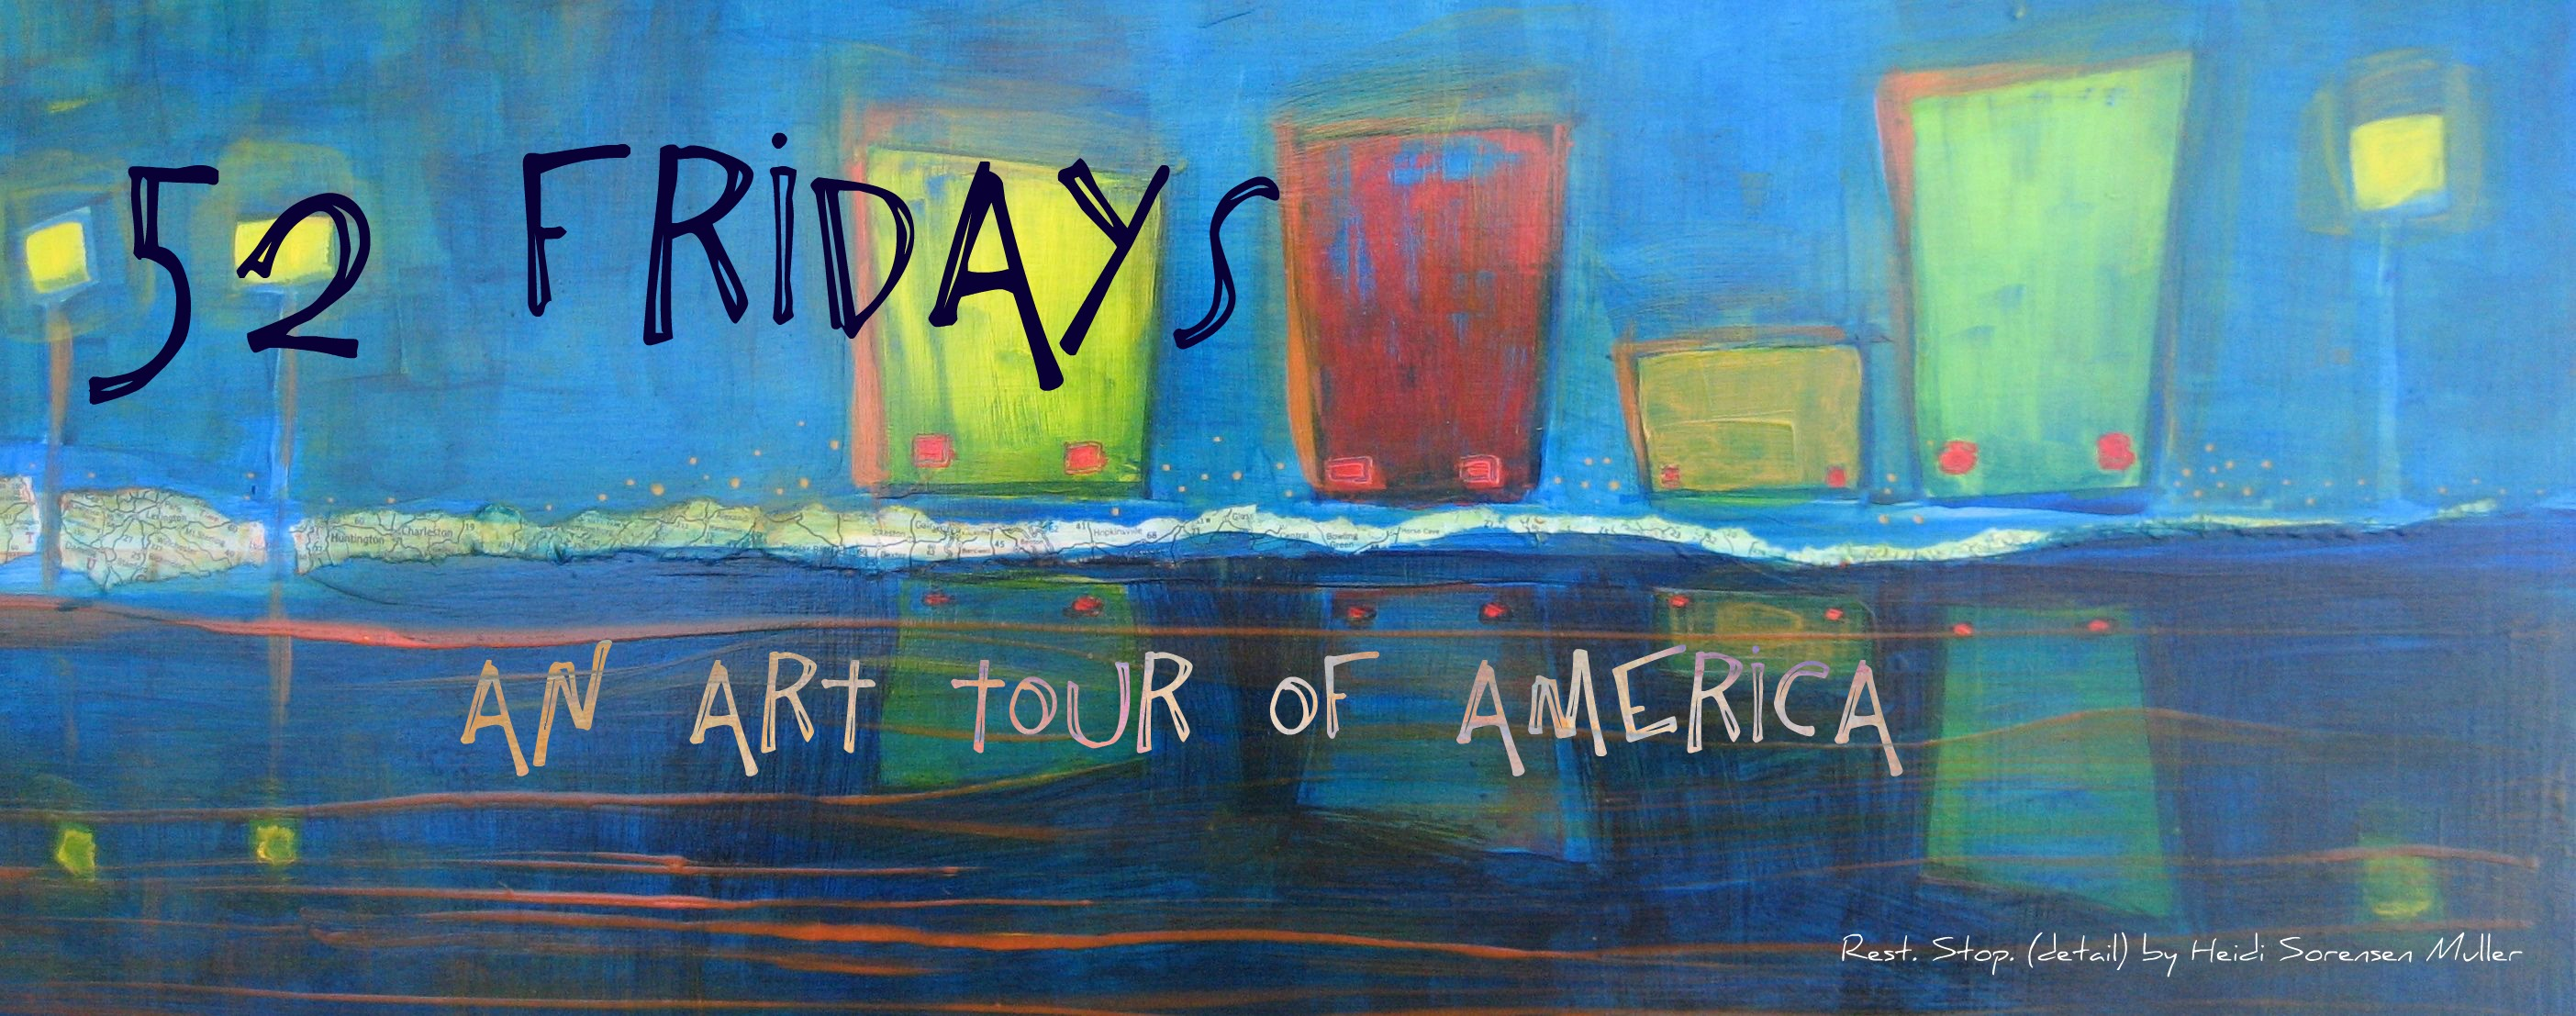 an art tour of the 50 states